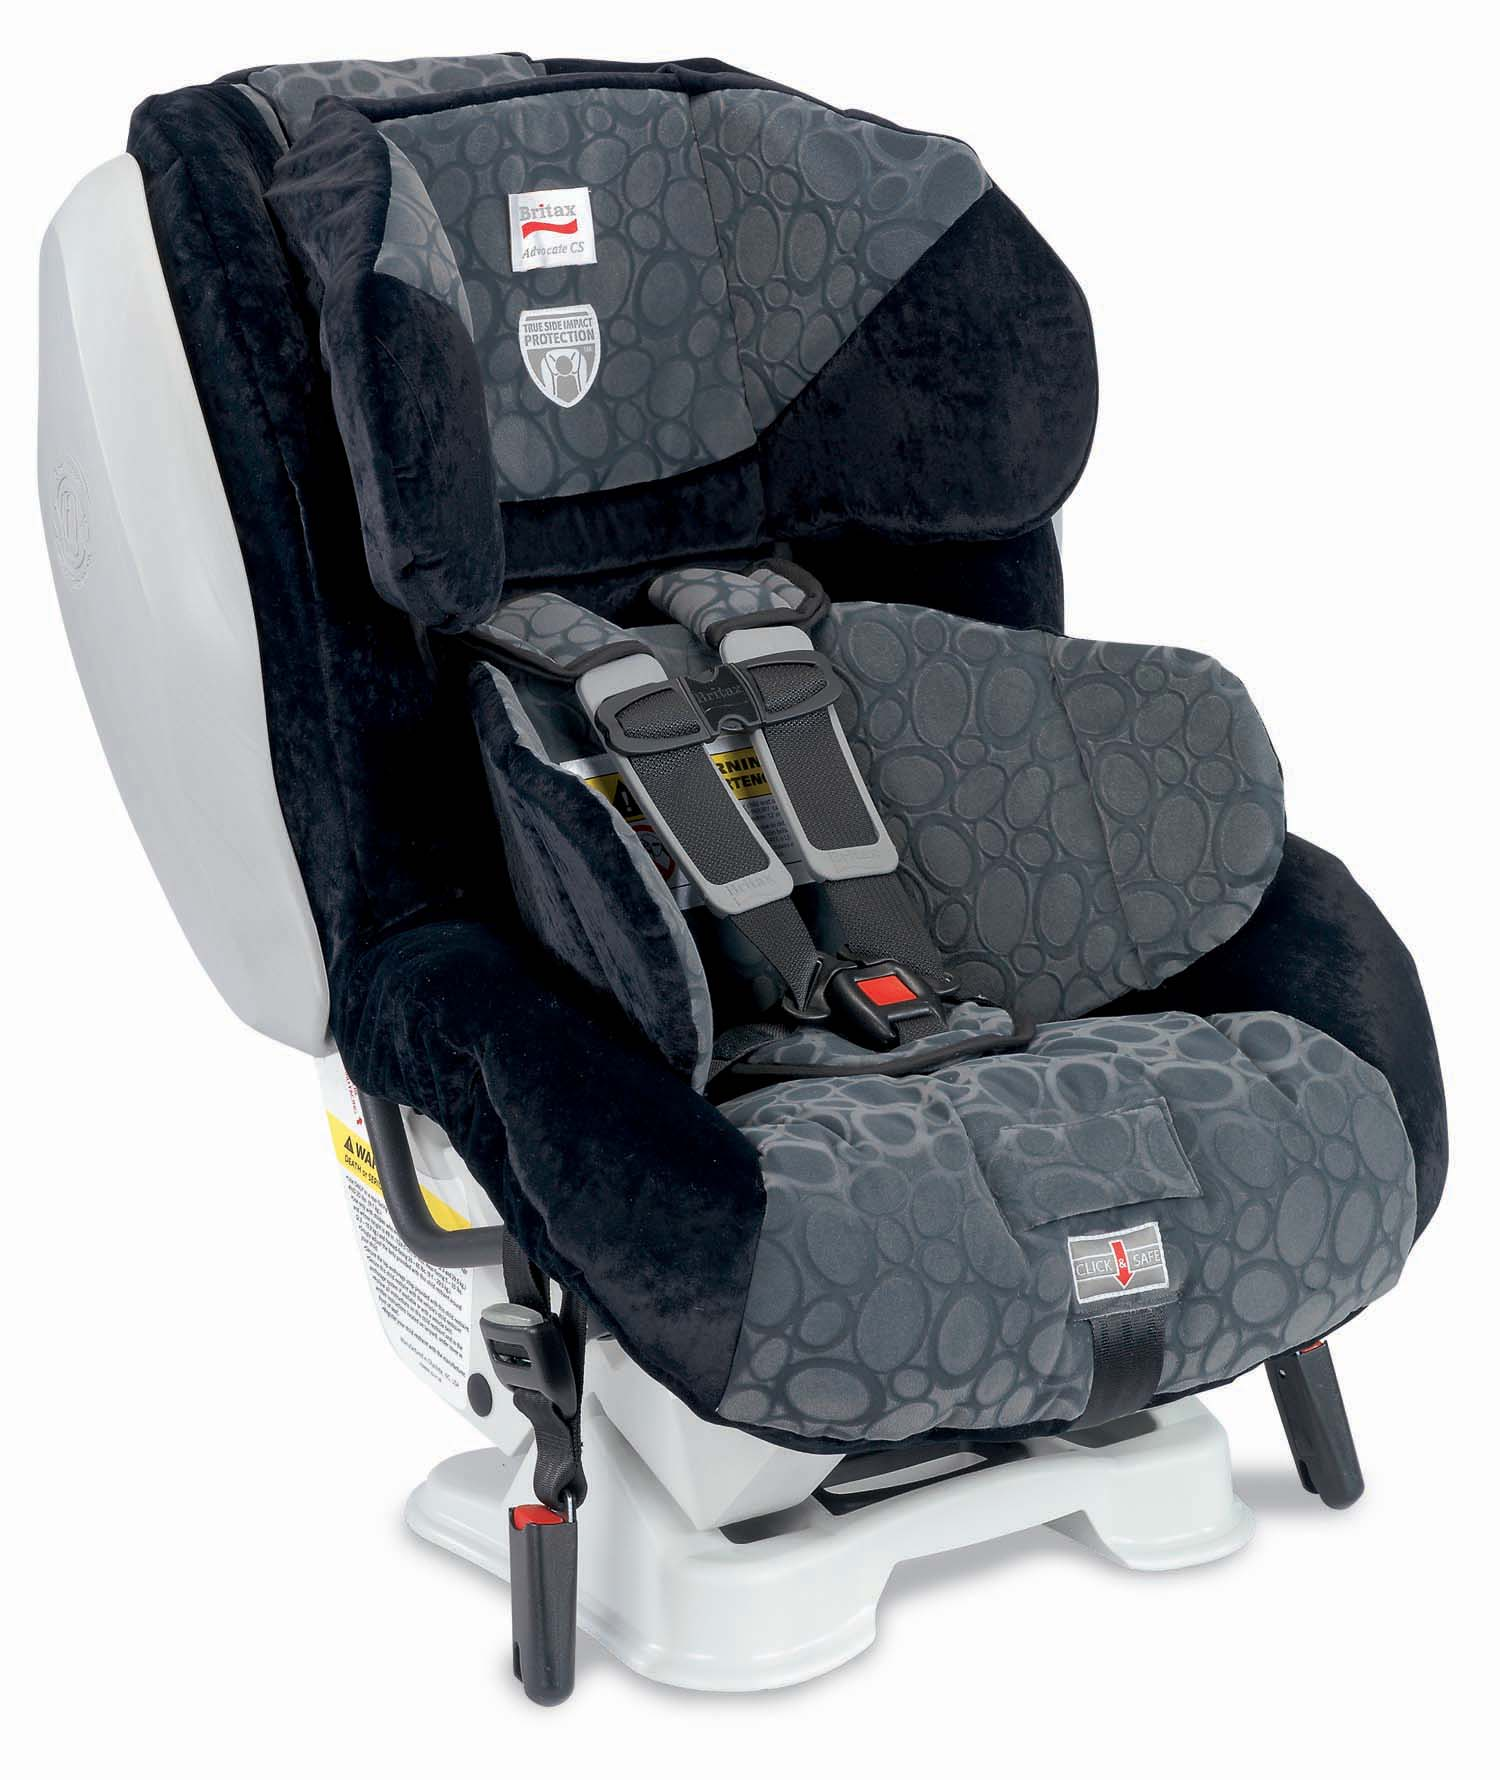 Unveiled Last Spring The Britax Advocate CS Is A High Weight Capacity Convertible Car Seat Which Introduces Revolutionary Energy Managing Side Impact